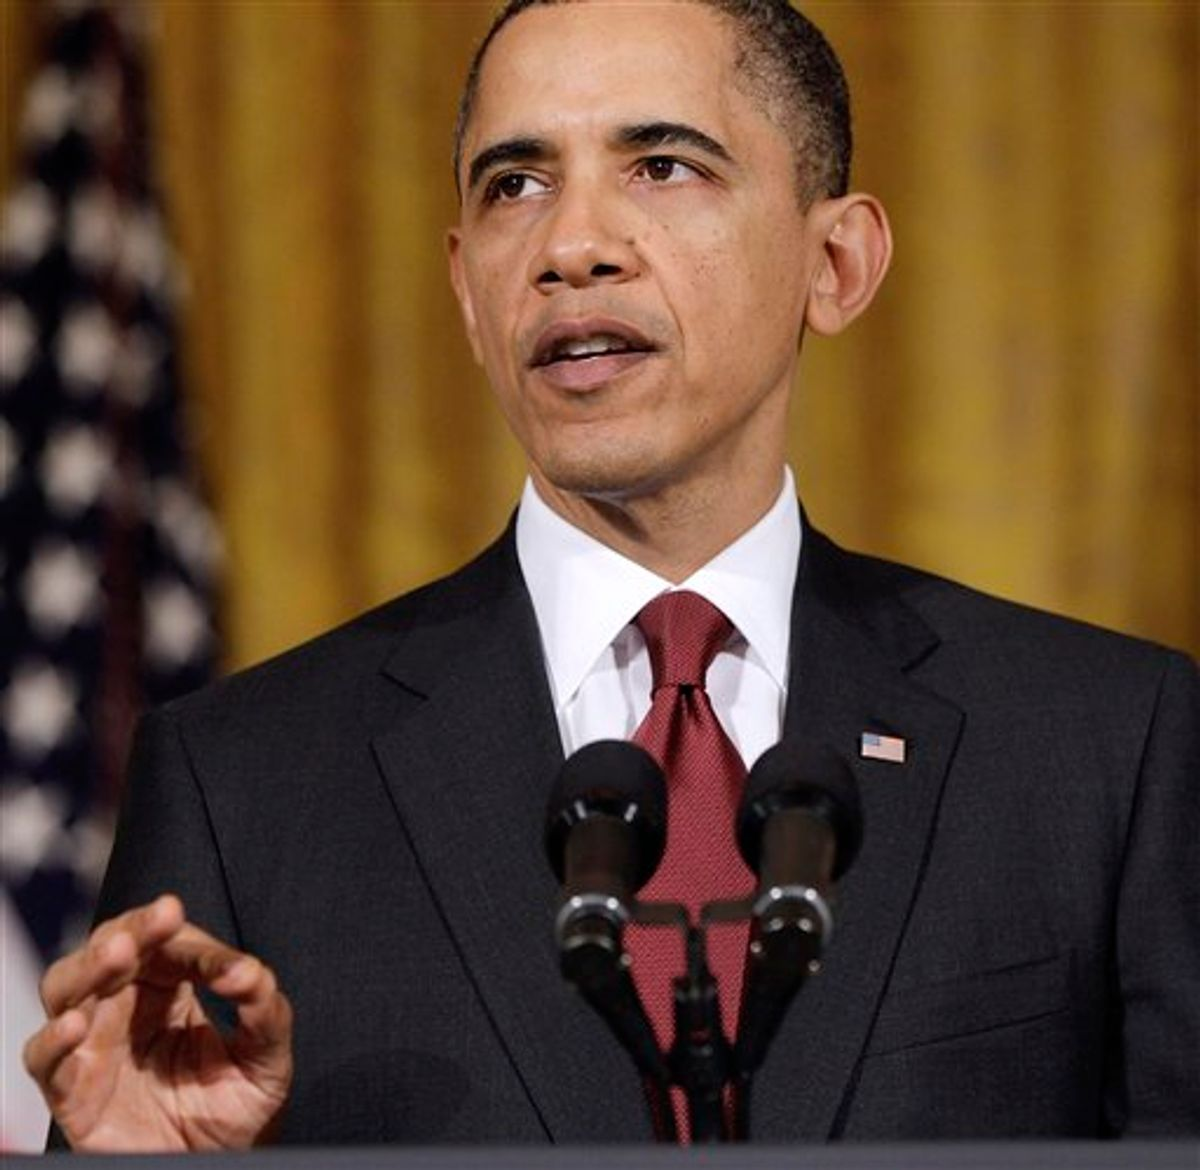 President Barack Obama makes a statement on Libya, Friday, March 18, 2011, in the East Room of the White House in Washington. (AP Photo) (AP)